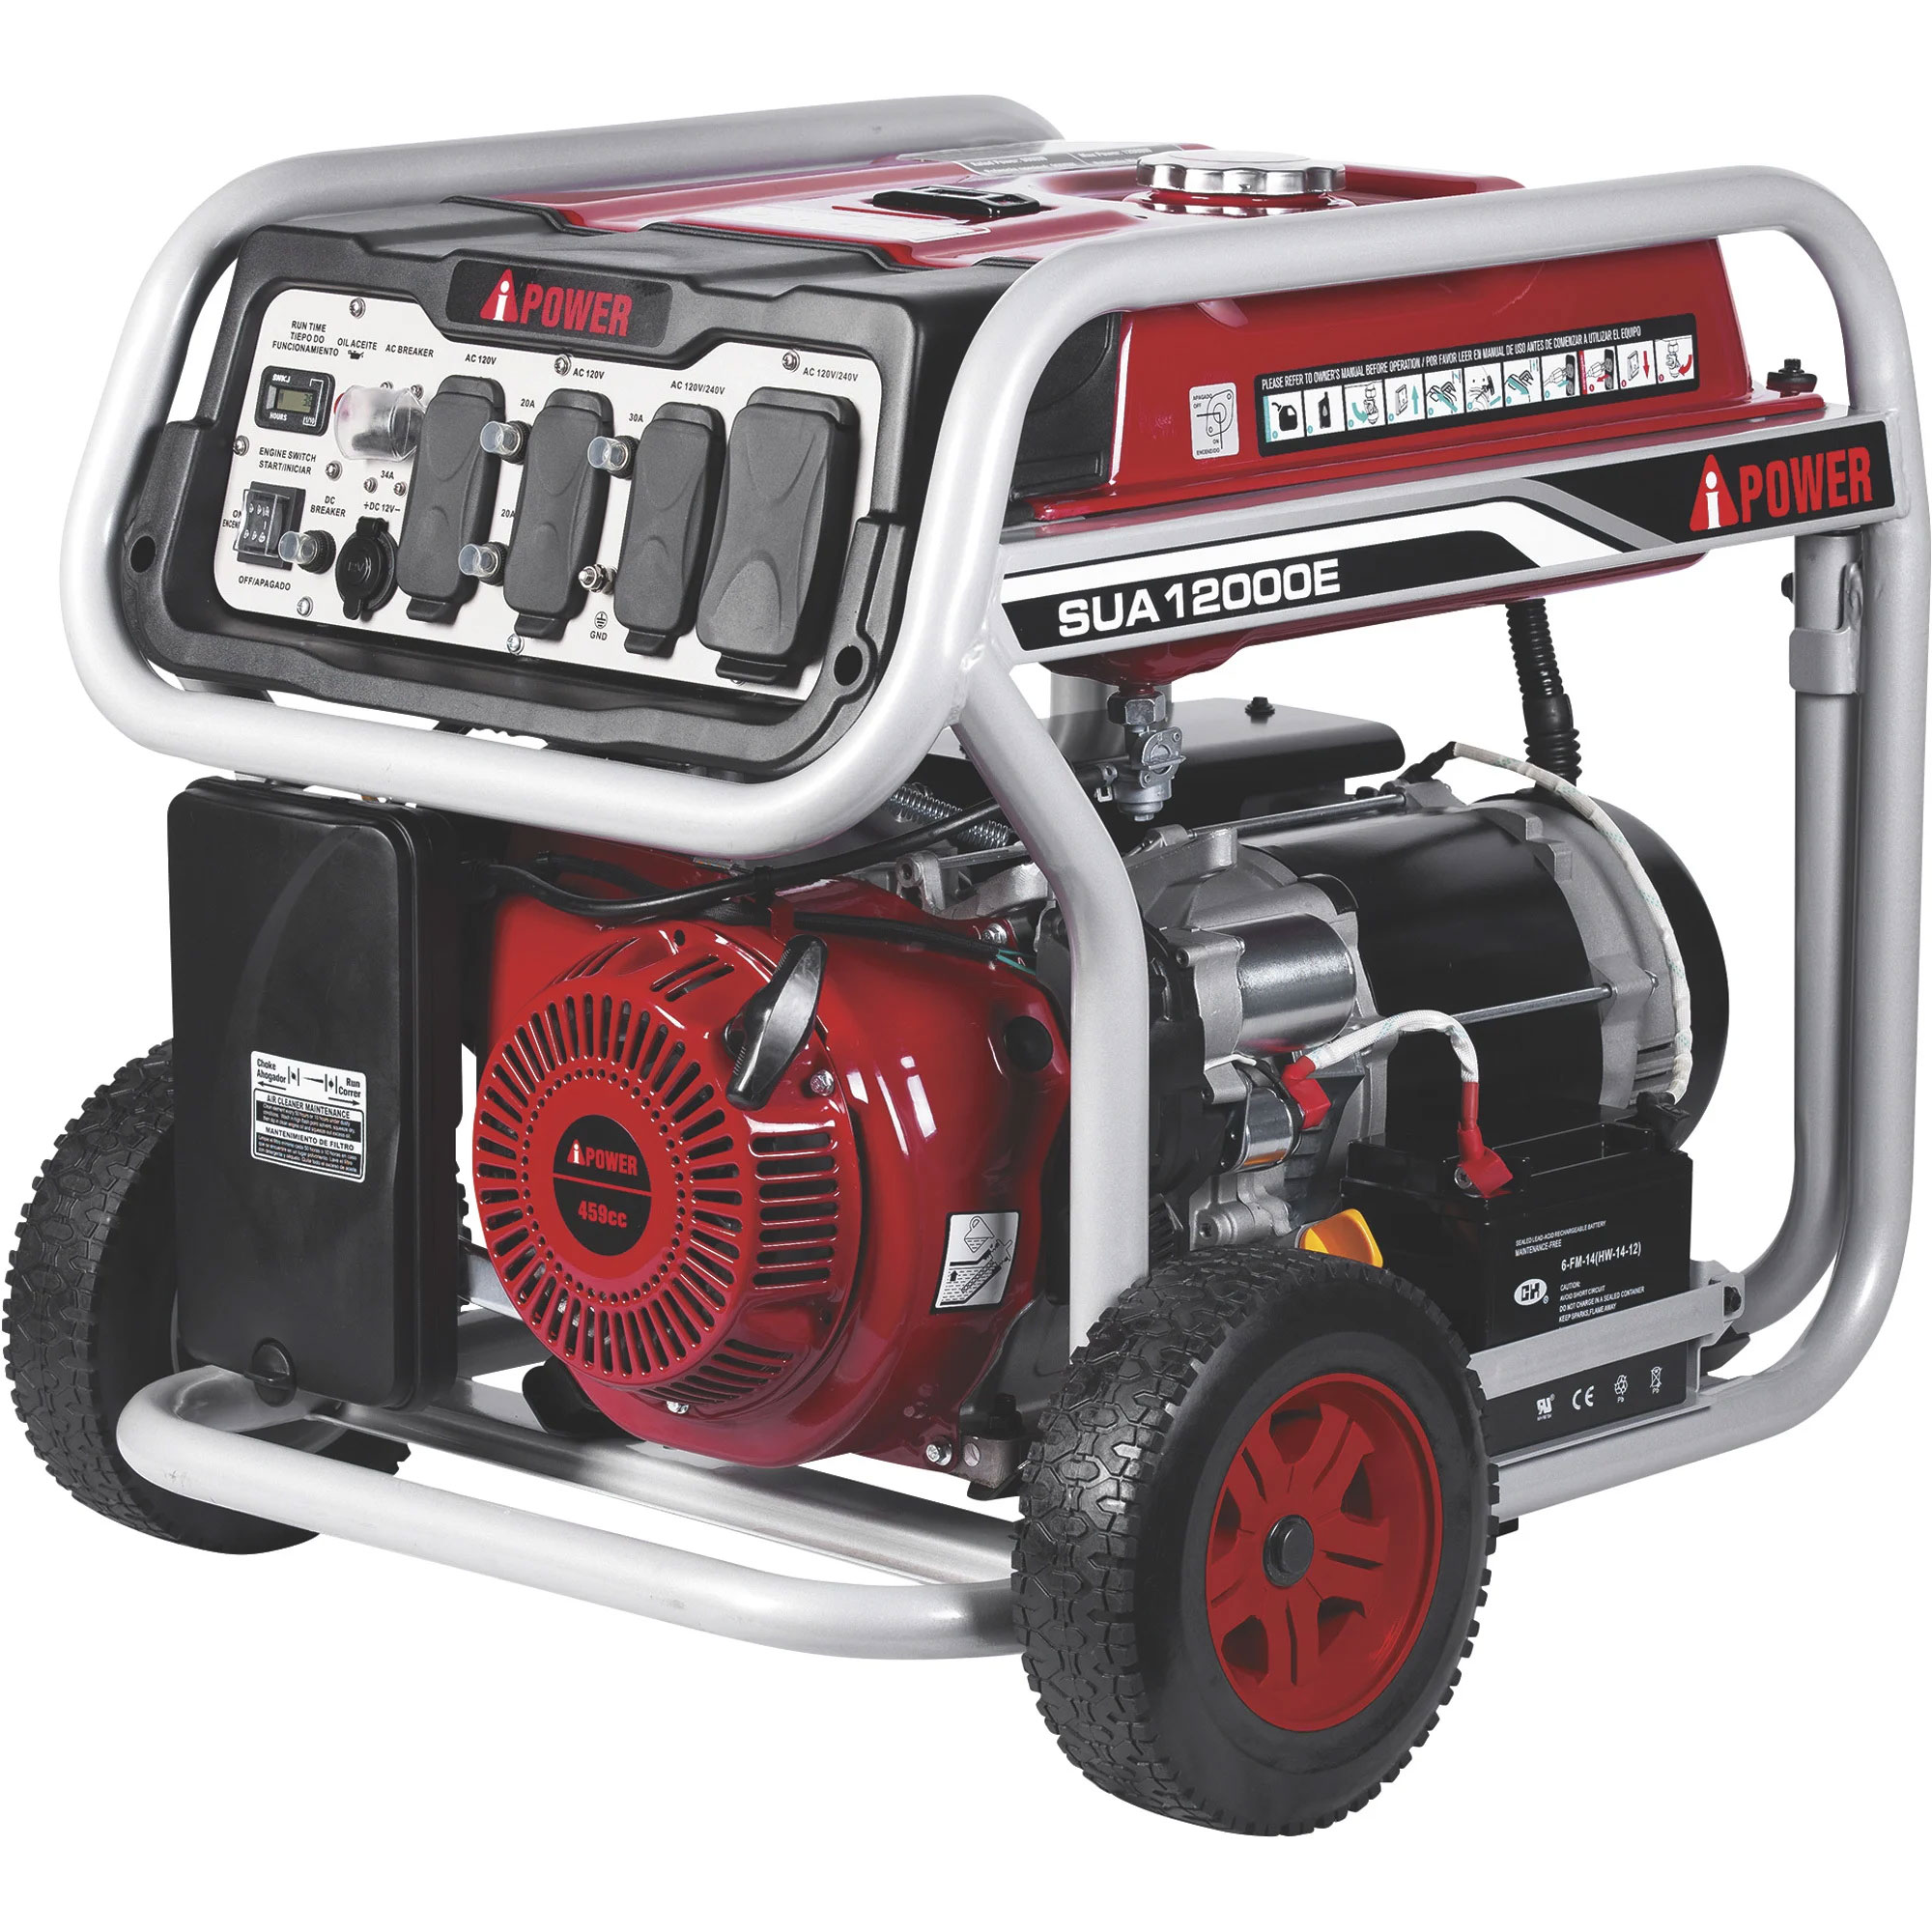 A-iPower Portable 459cc Generator 9000 Run 12000 Surge Electric Start SUA12000E 244007